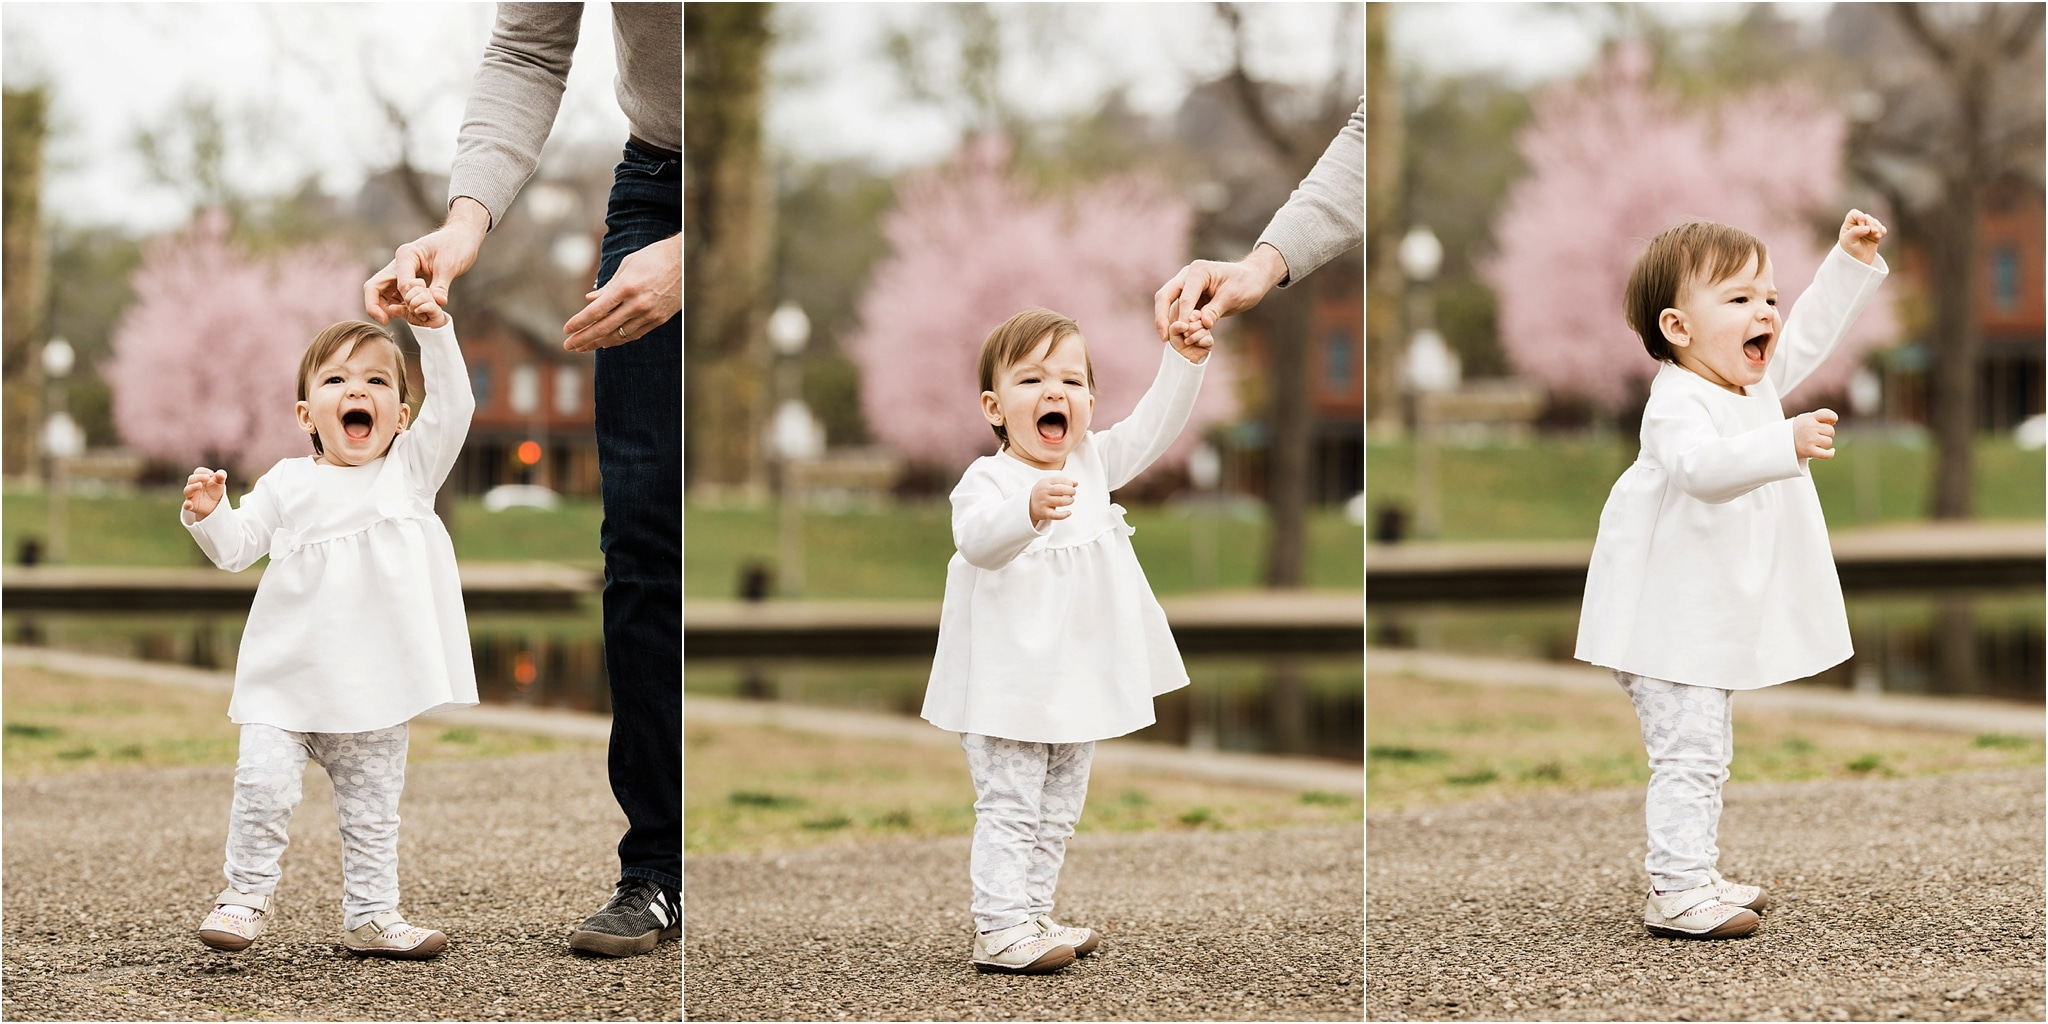 12 month old walking at Spring Family photos at West Park in Pittsburgh